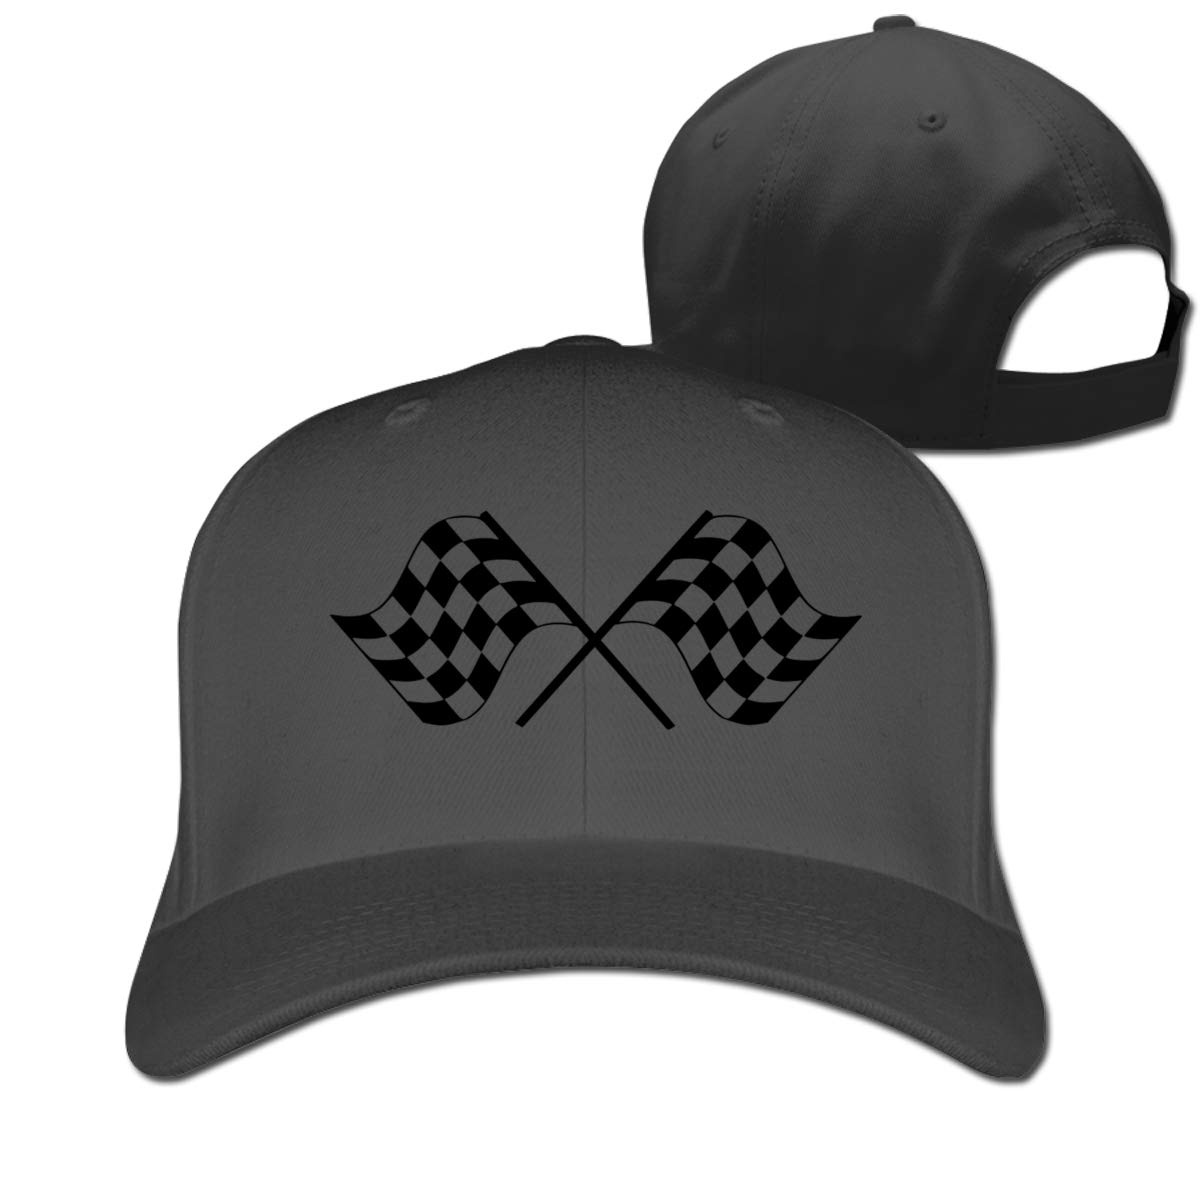 Free Race Car Embroidery Patterns New Patterns